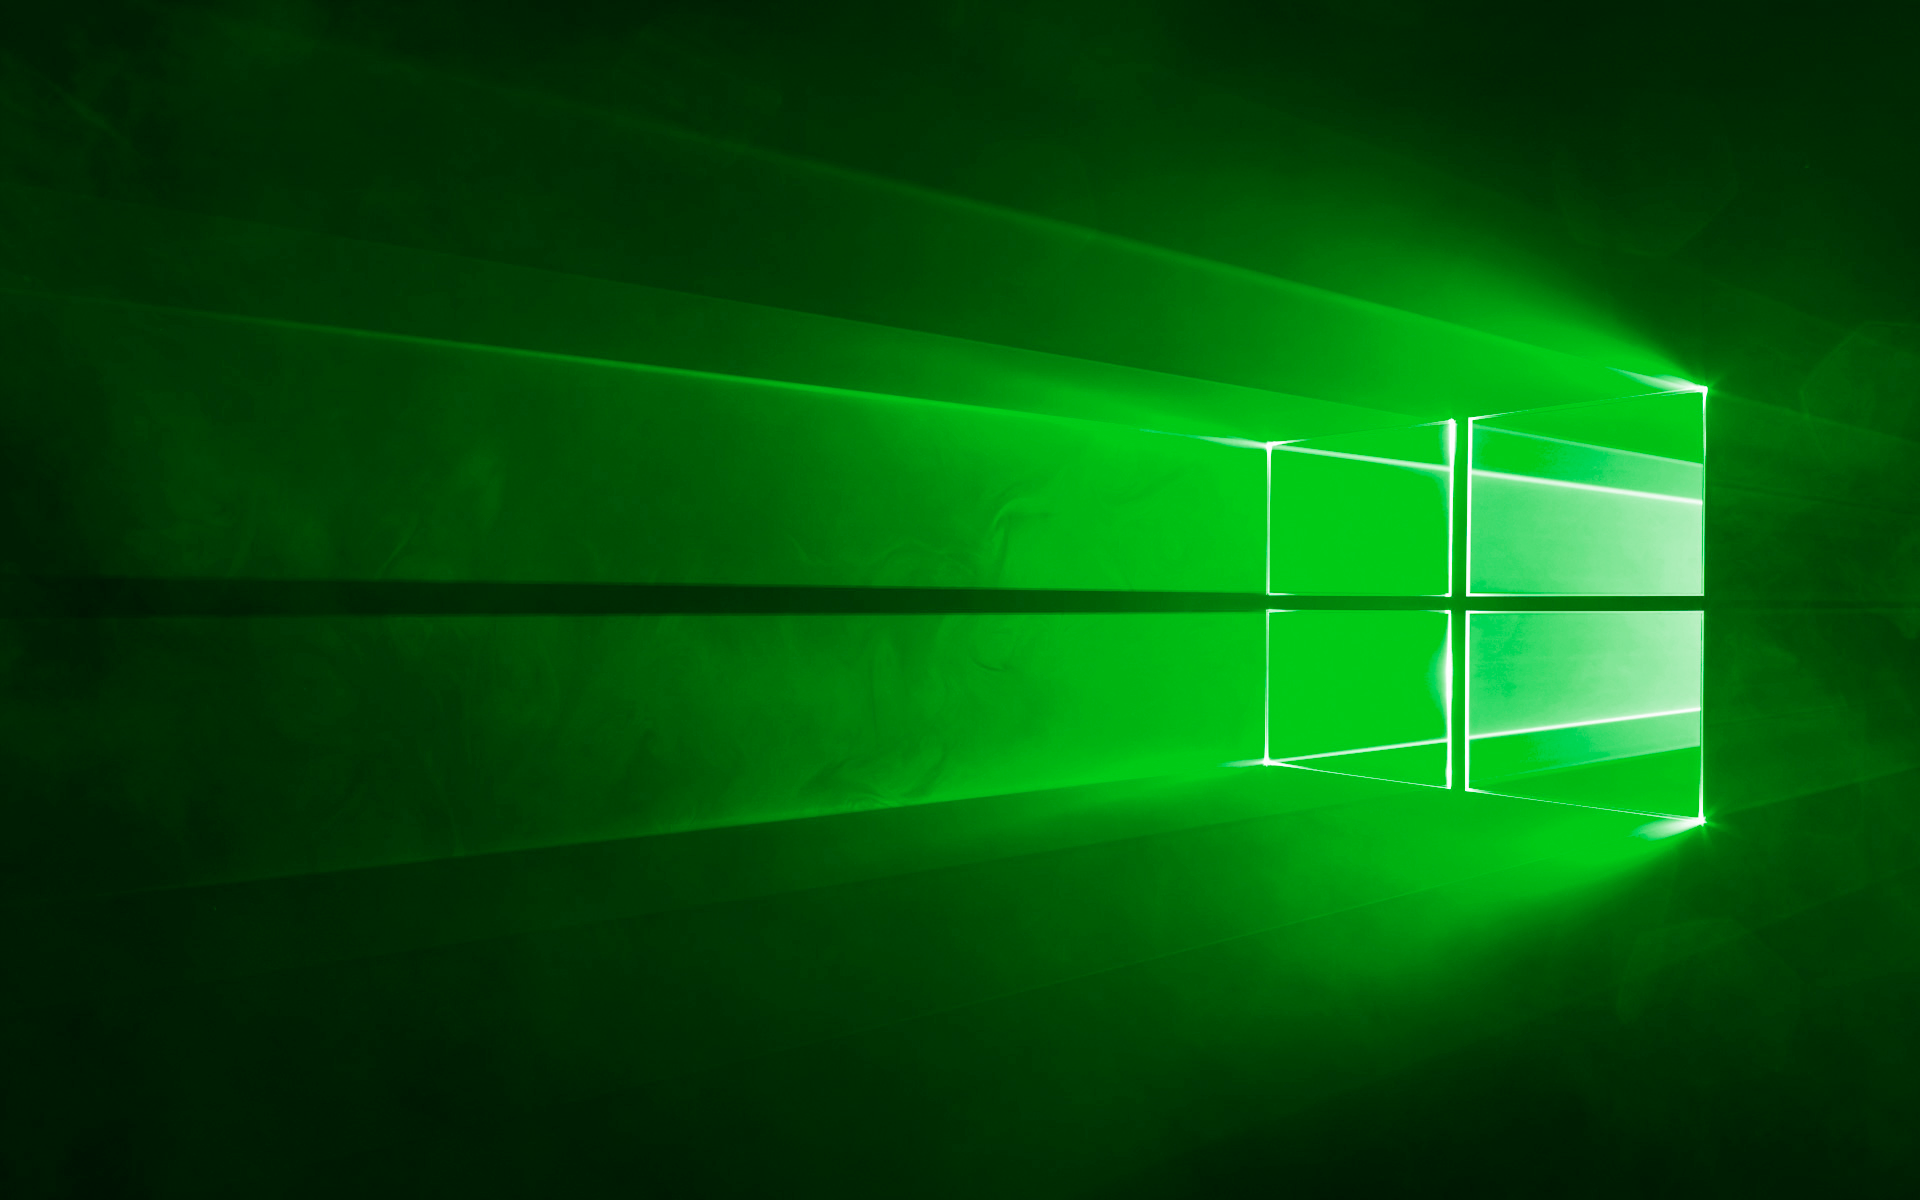 Windows mobile wallpaper green